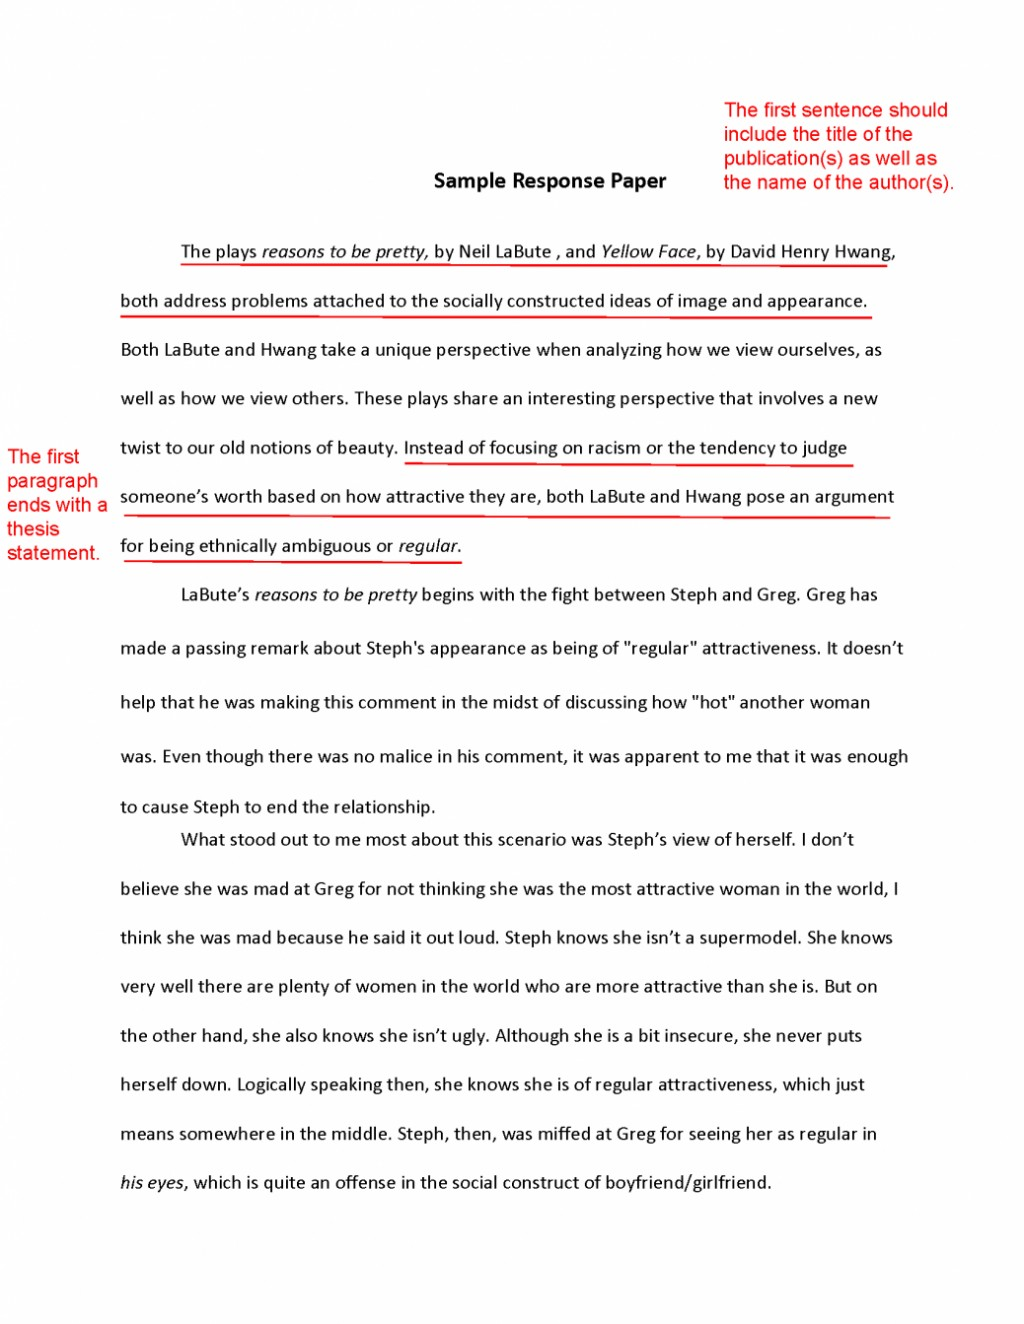 012 Examples Of Research Paper Introductions Proposal Essay Topics List Response Sociology Template Proposing Solution Responce Stupendous Example Introduction About Bullying Scientific Psychology Large